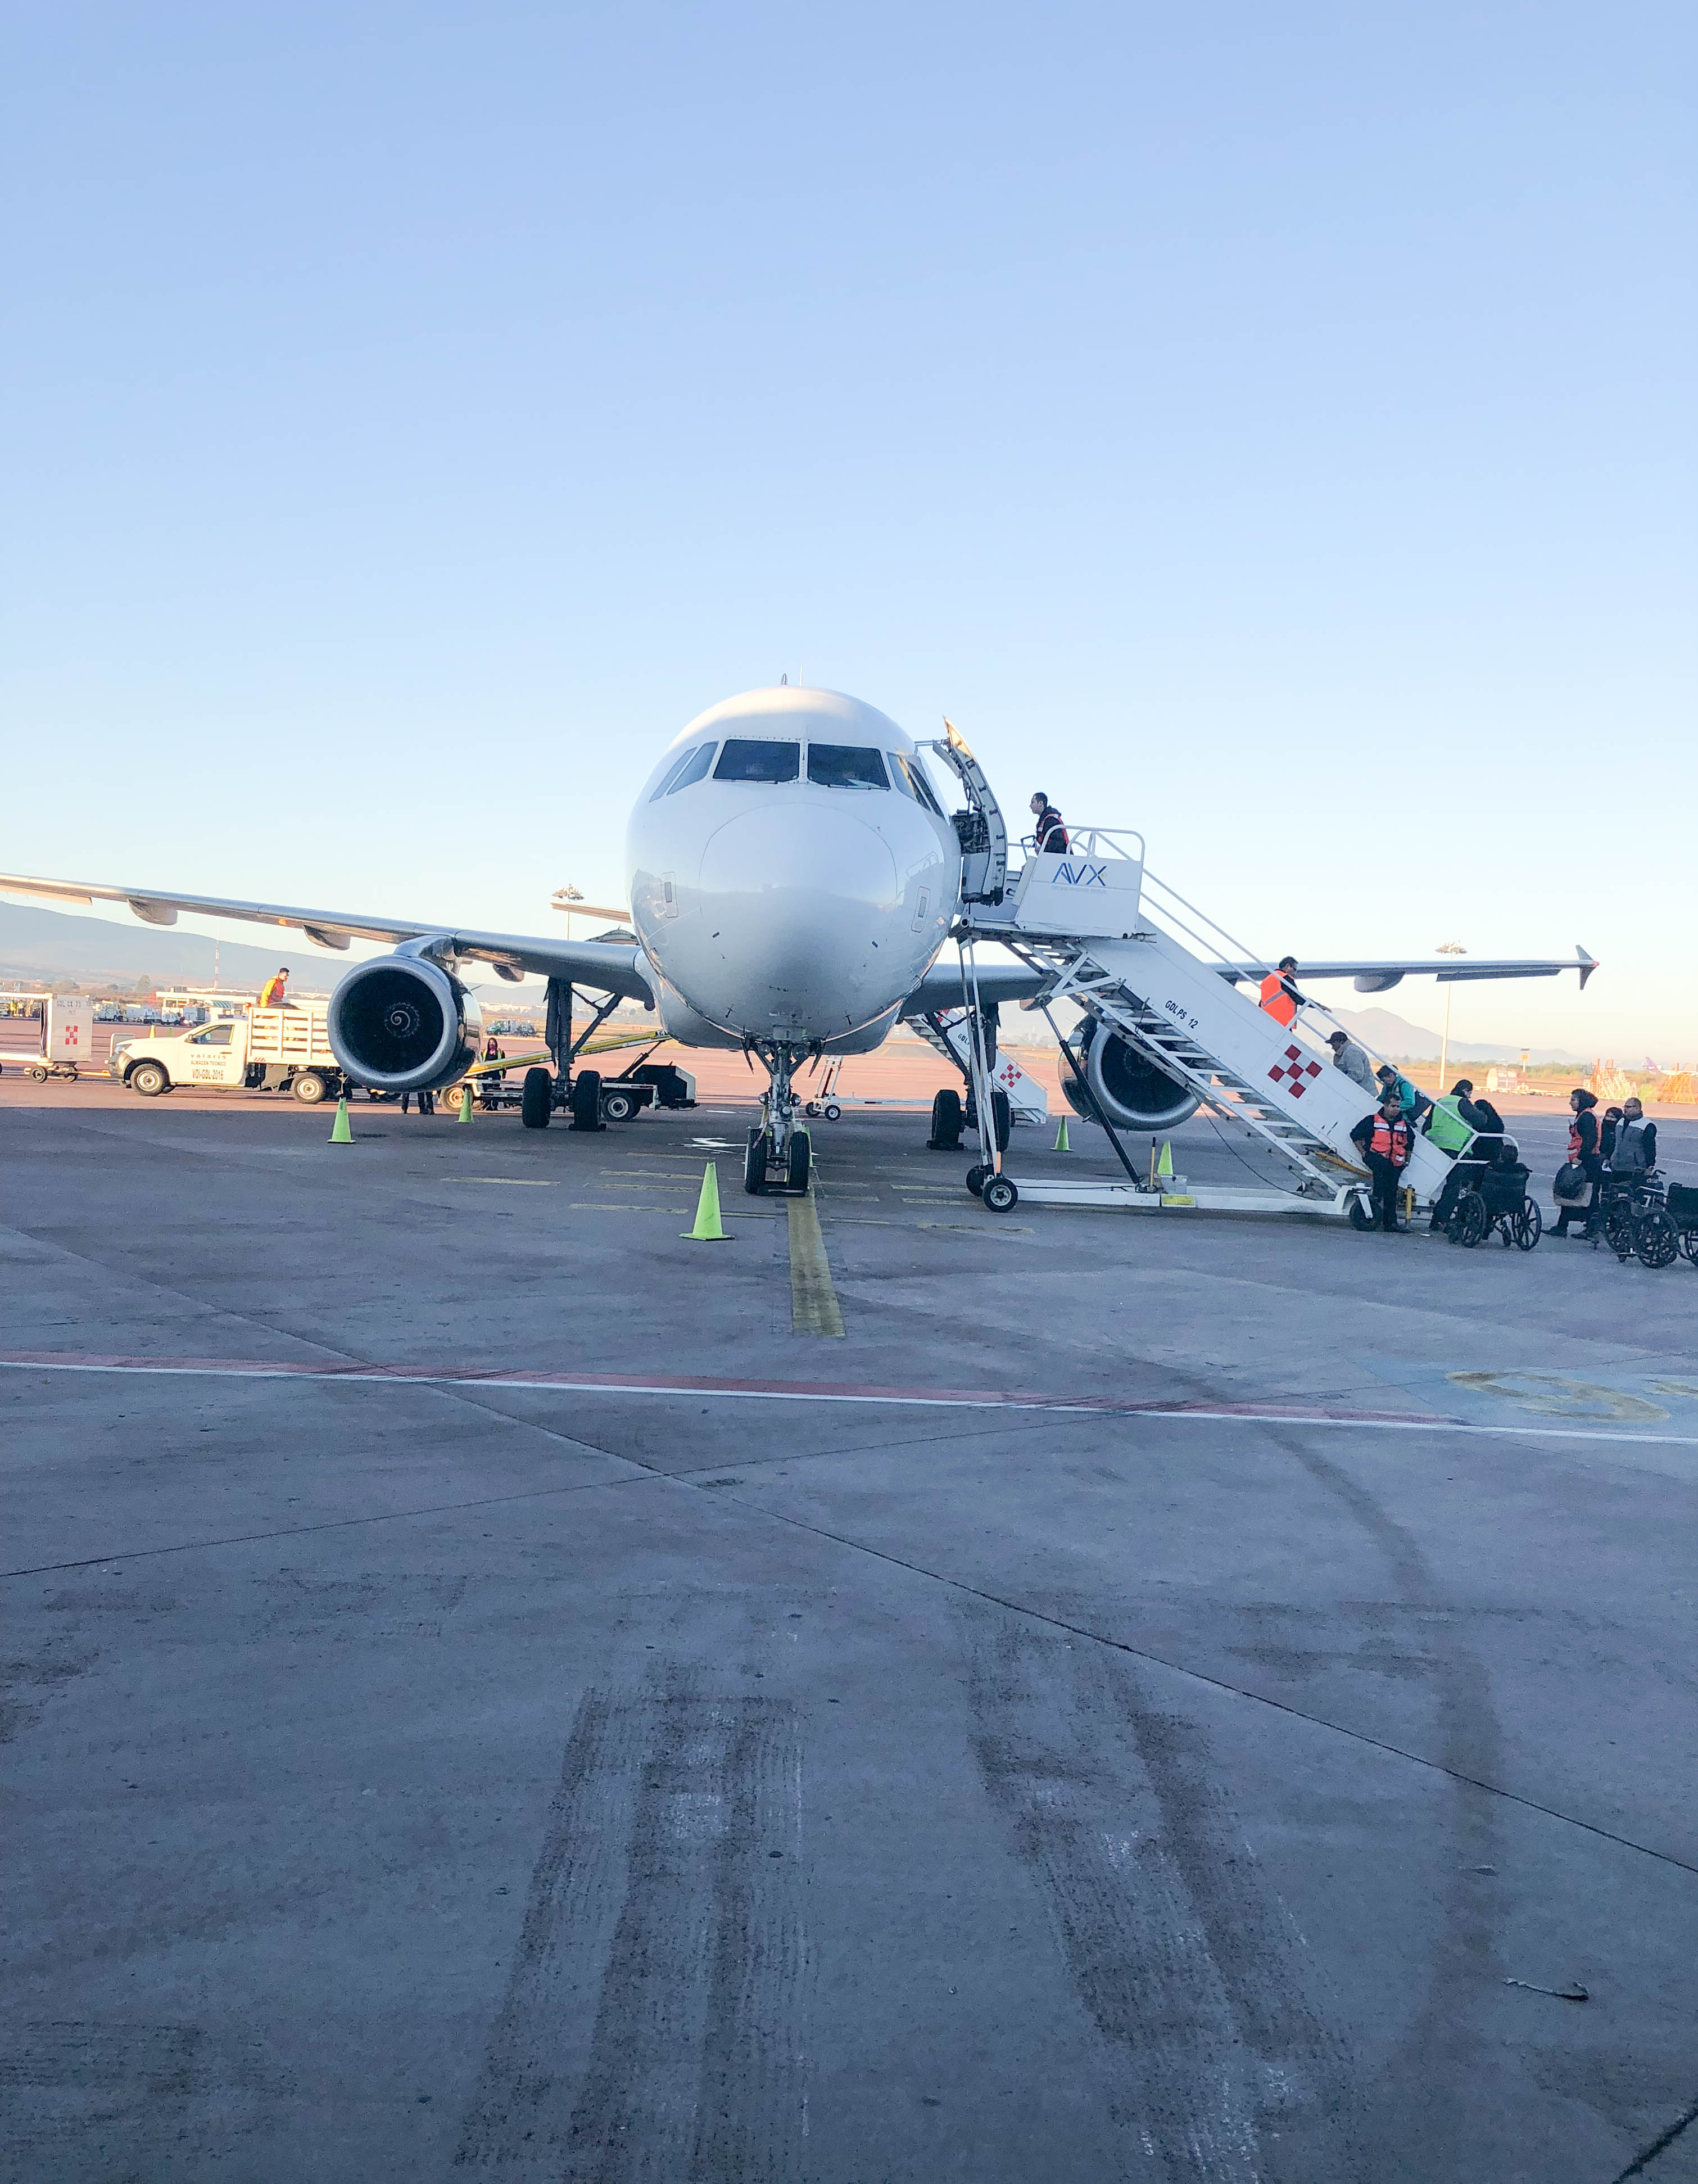 volaris flight Guadalajara #volaris #travelblogger #travel